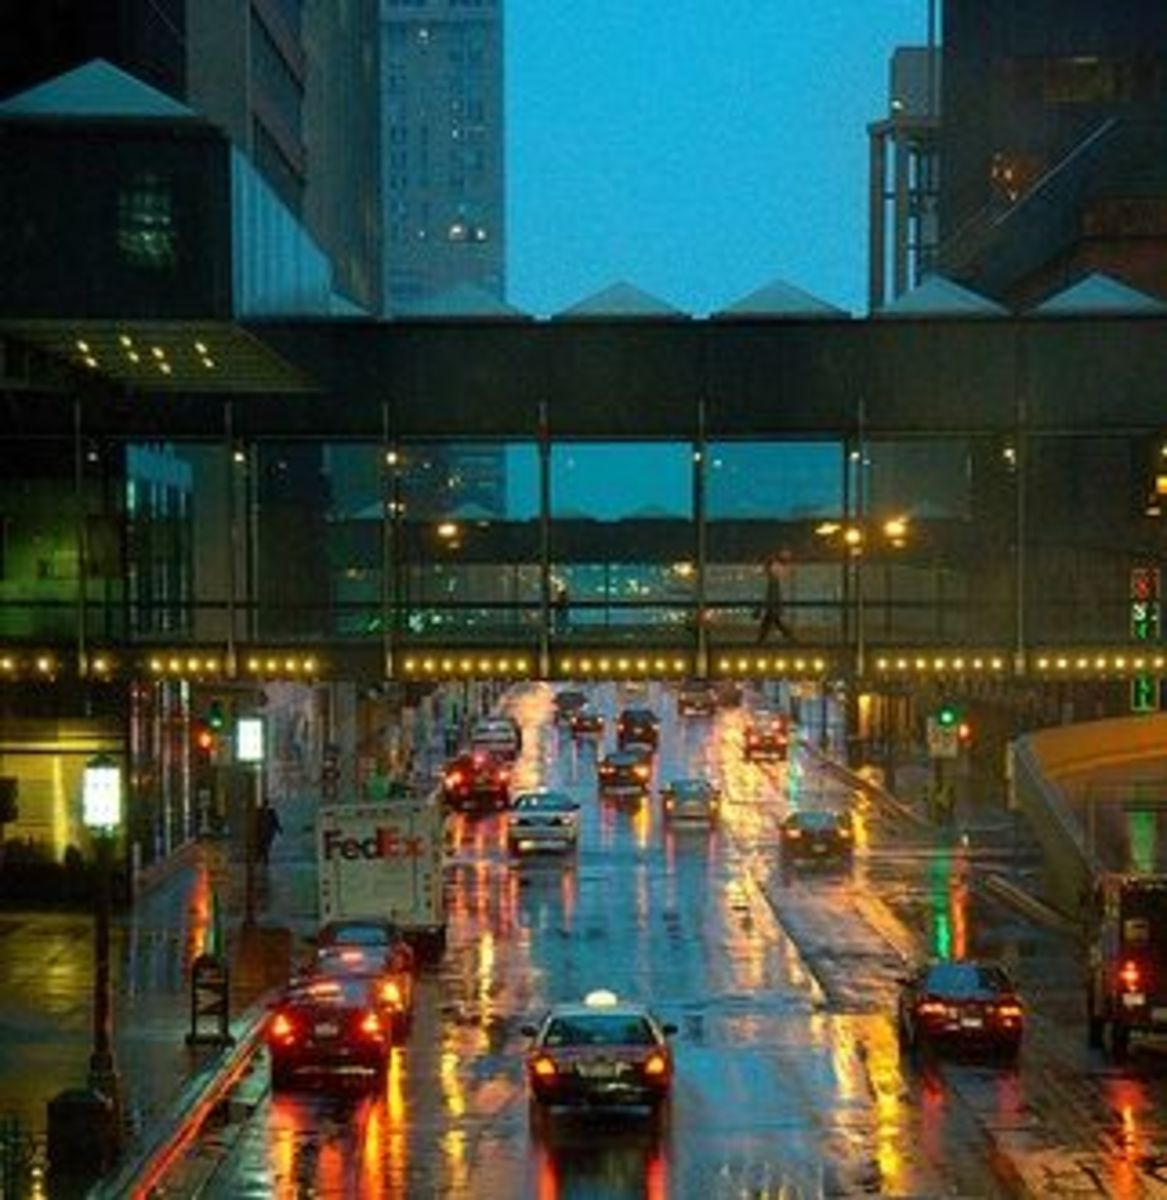 Image credit: http://minnesota-attractions.com/skyway.html